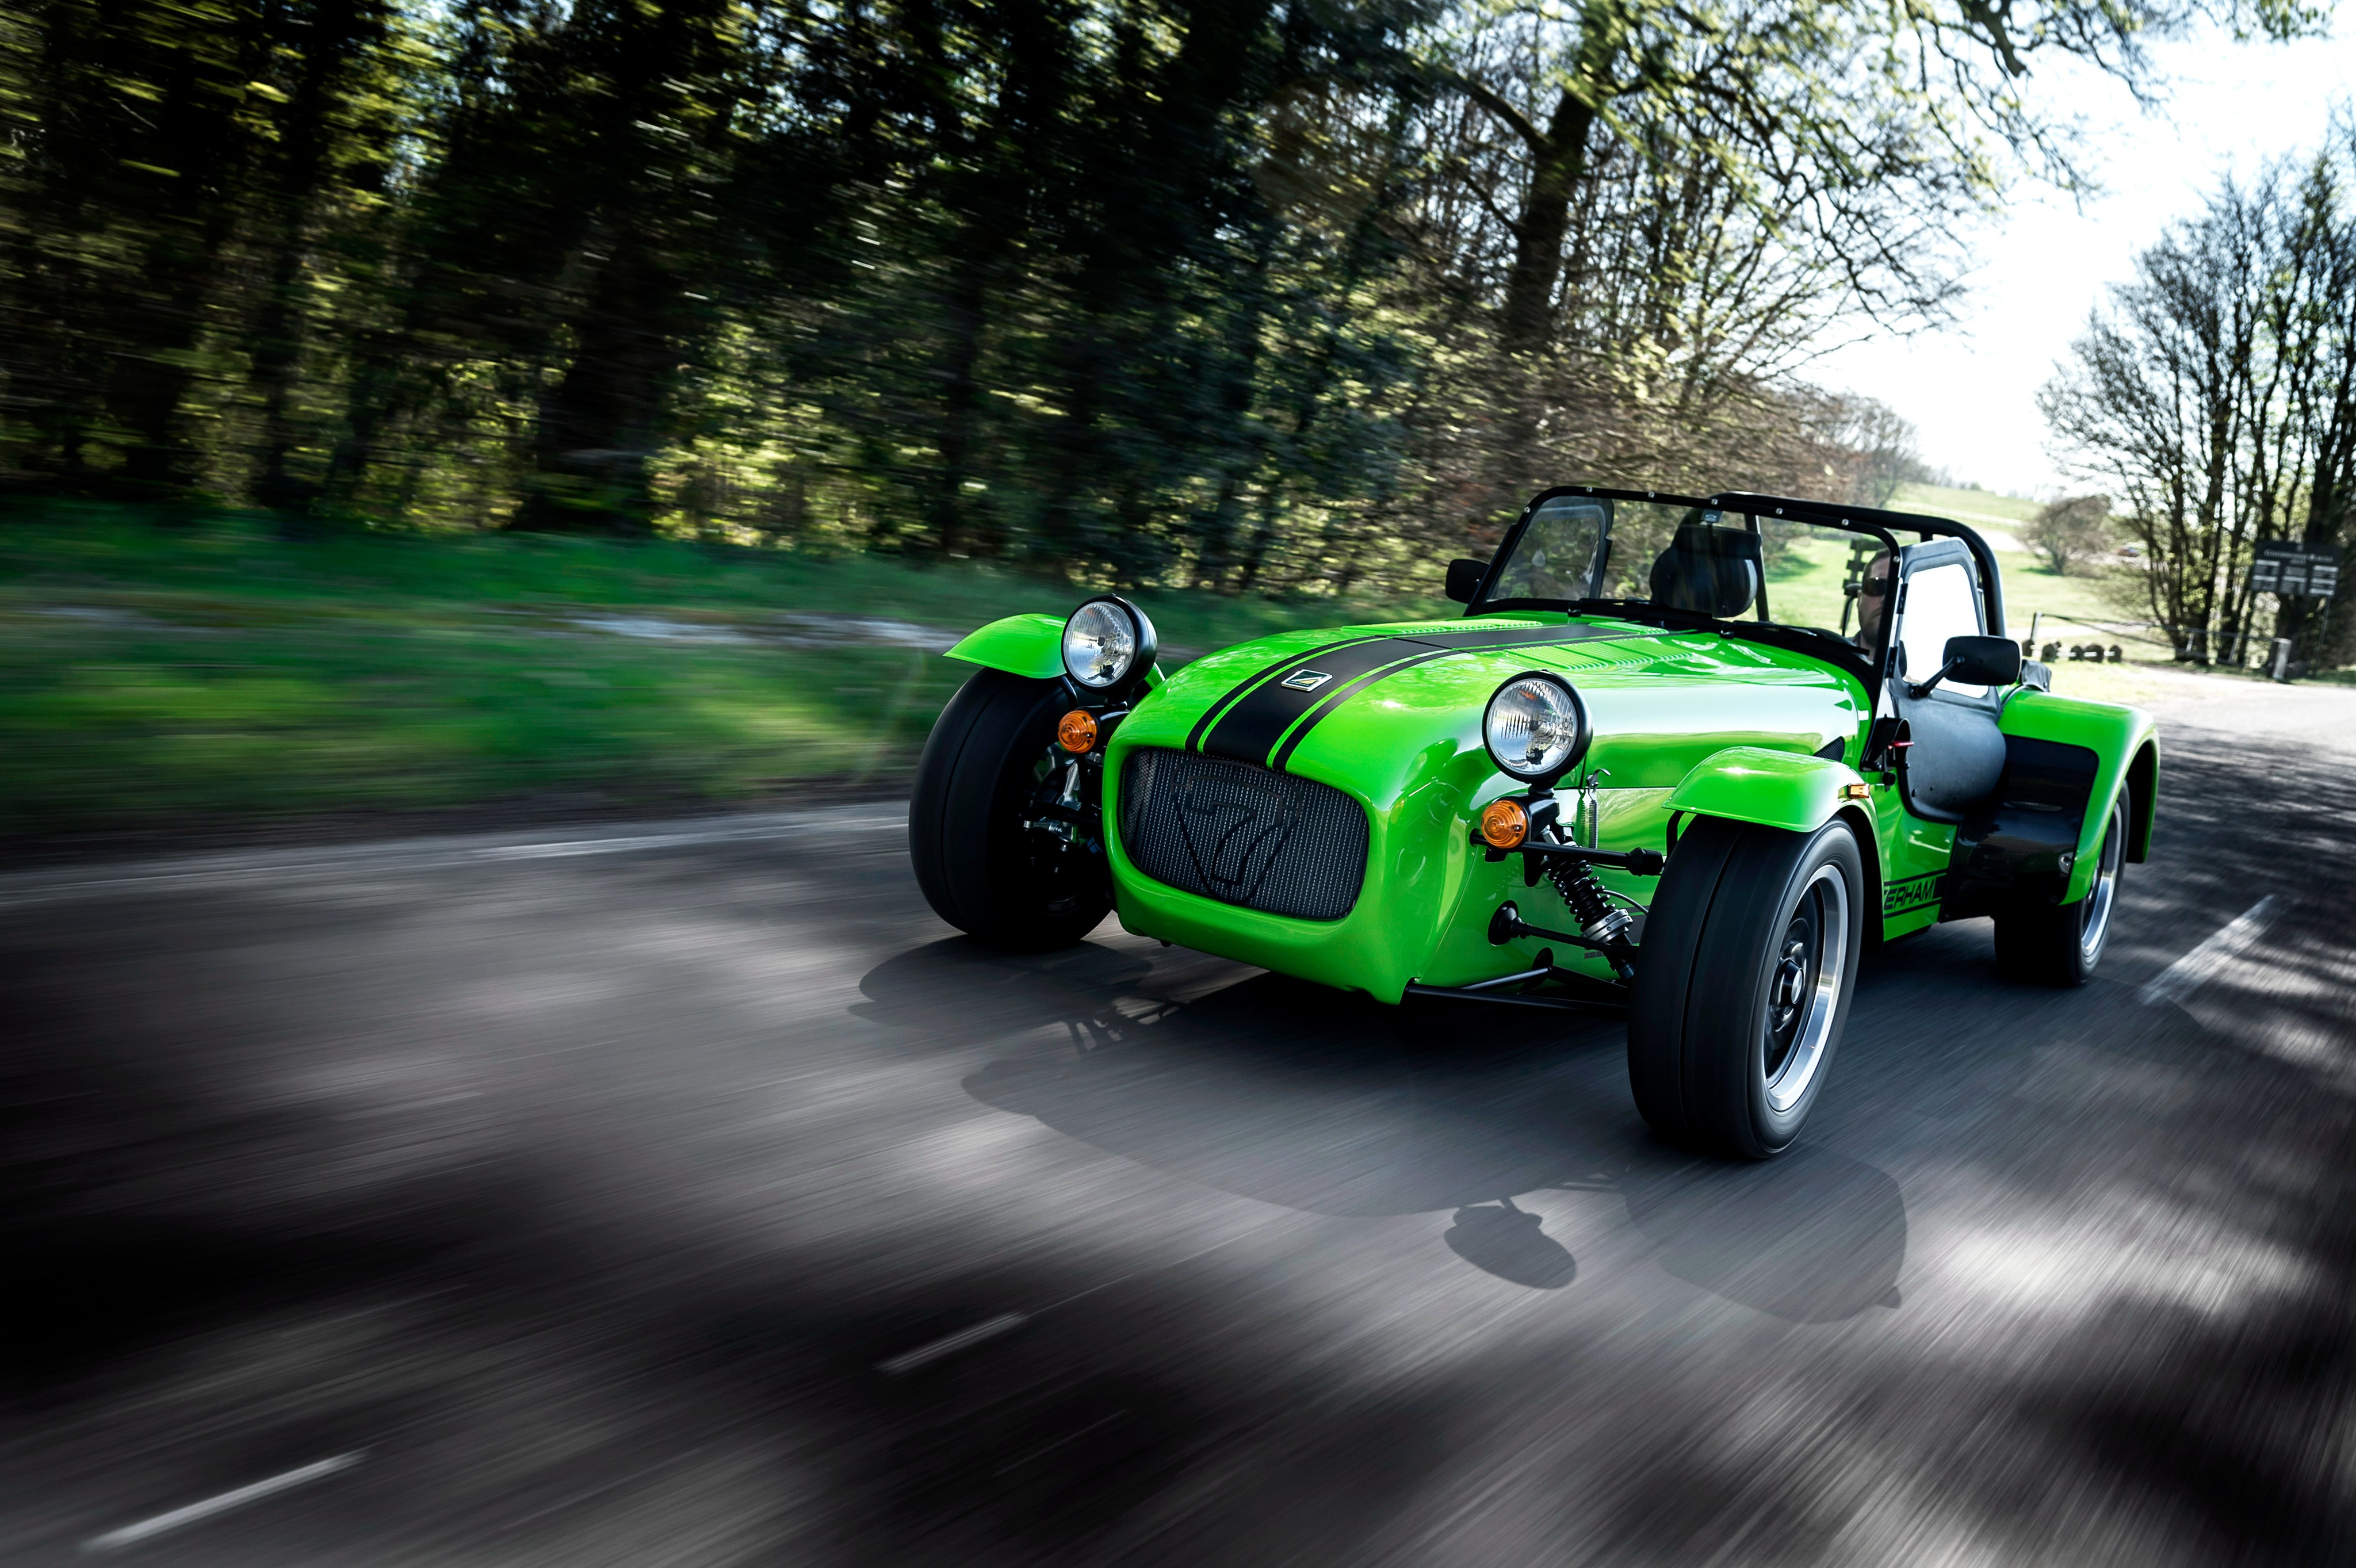 Wallpaper Caterham Seven 275 R Caterham 7 Green Cars